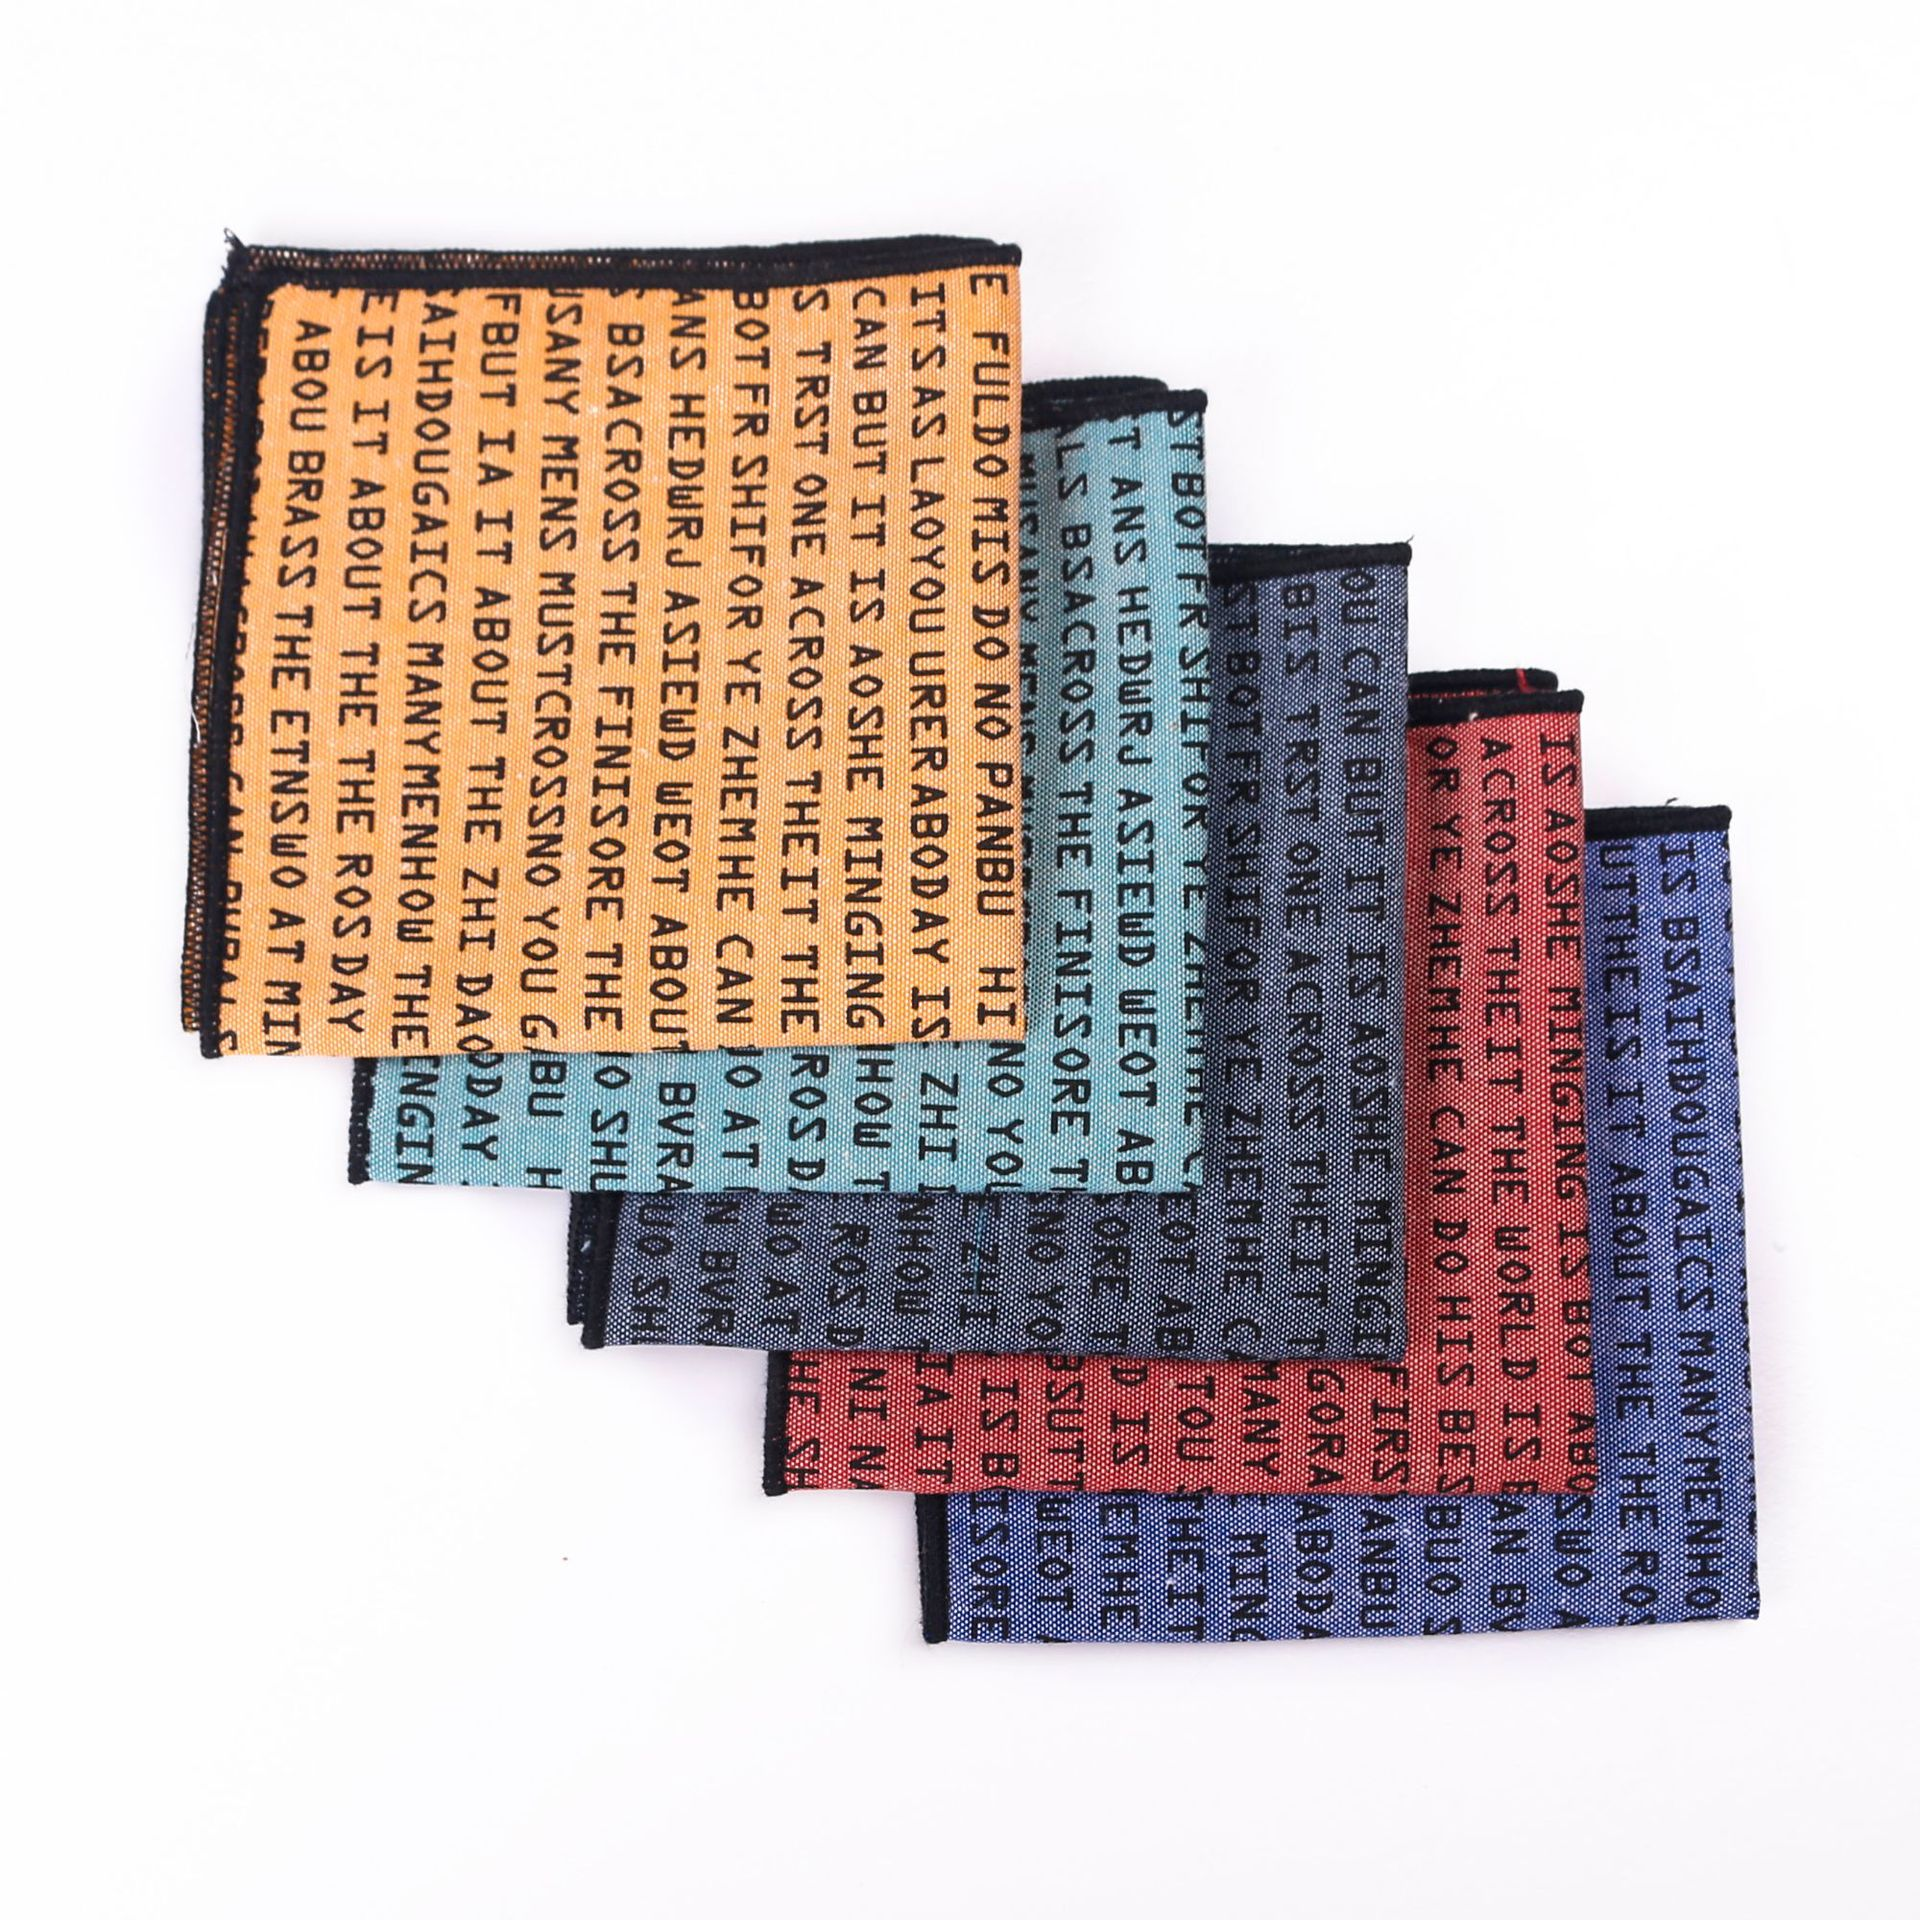 Alphabet Printed Pocket Towel Fun Leisure Men's Towel Men's Square Clothing Men's Formal Suit Handkerchief Wholesale